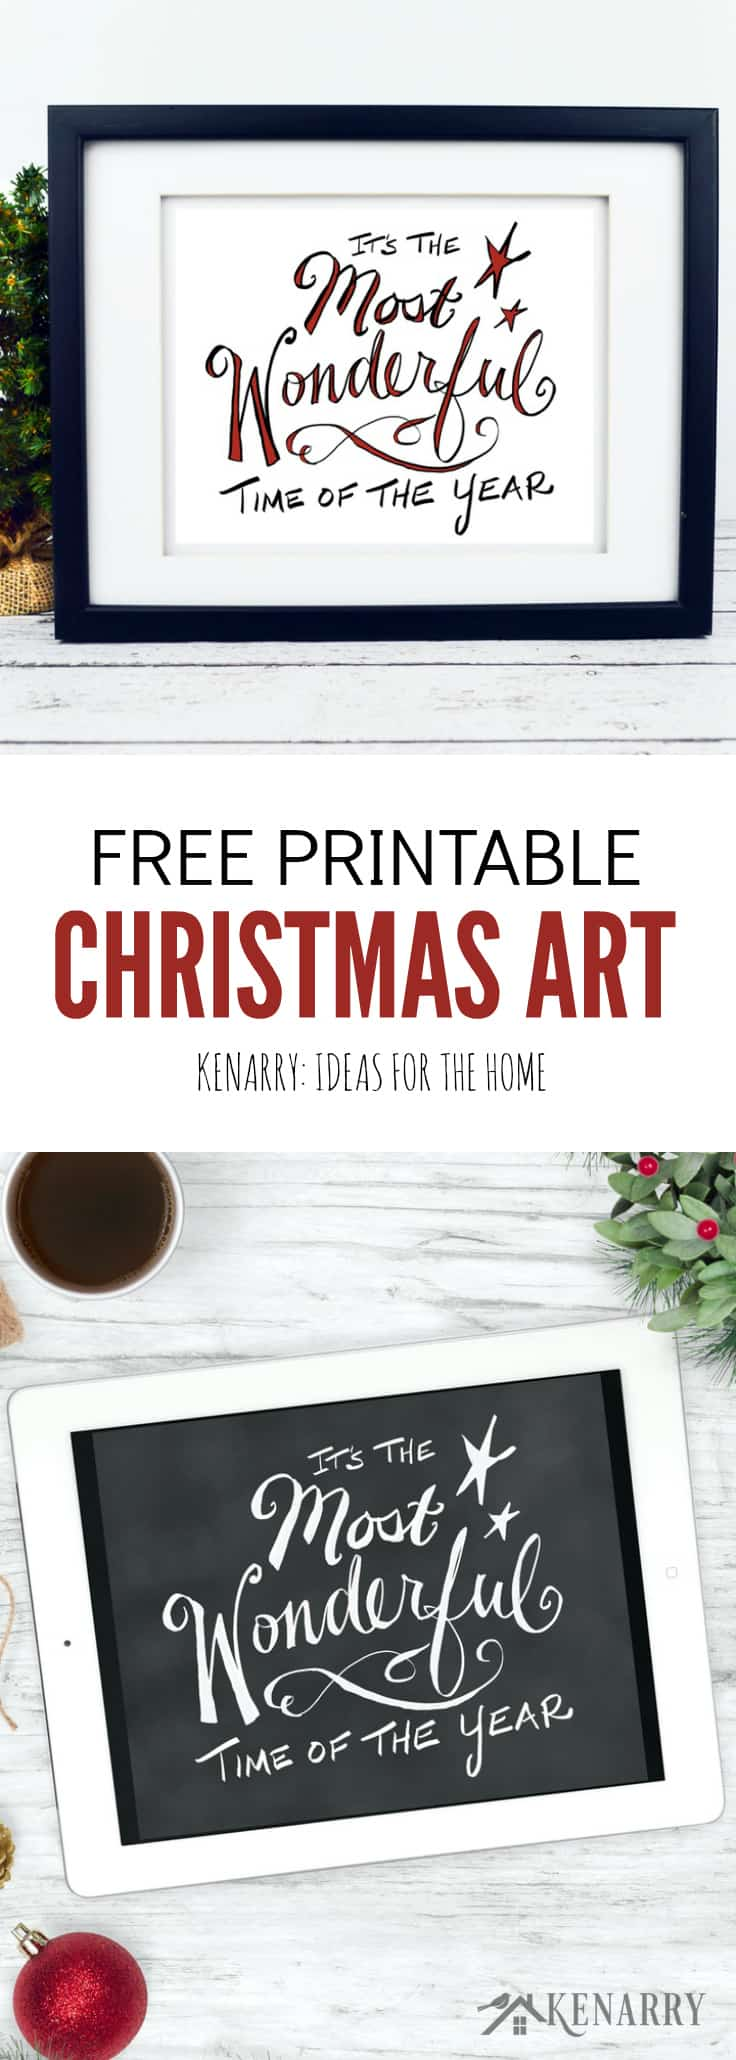 It's the Most Wonderful Time of the Year! Decorate your home for the holidays with these two beautiful Christmas free printables from Kenarry.com.